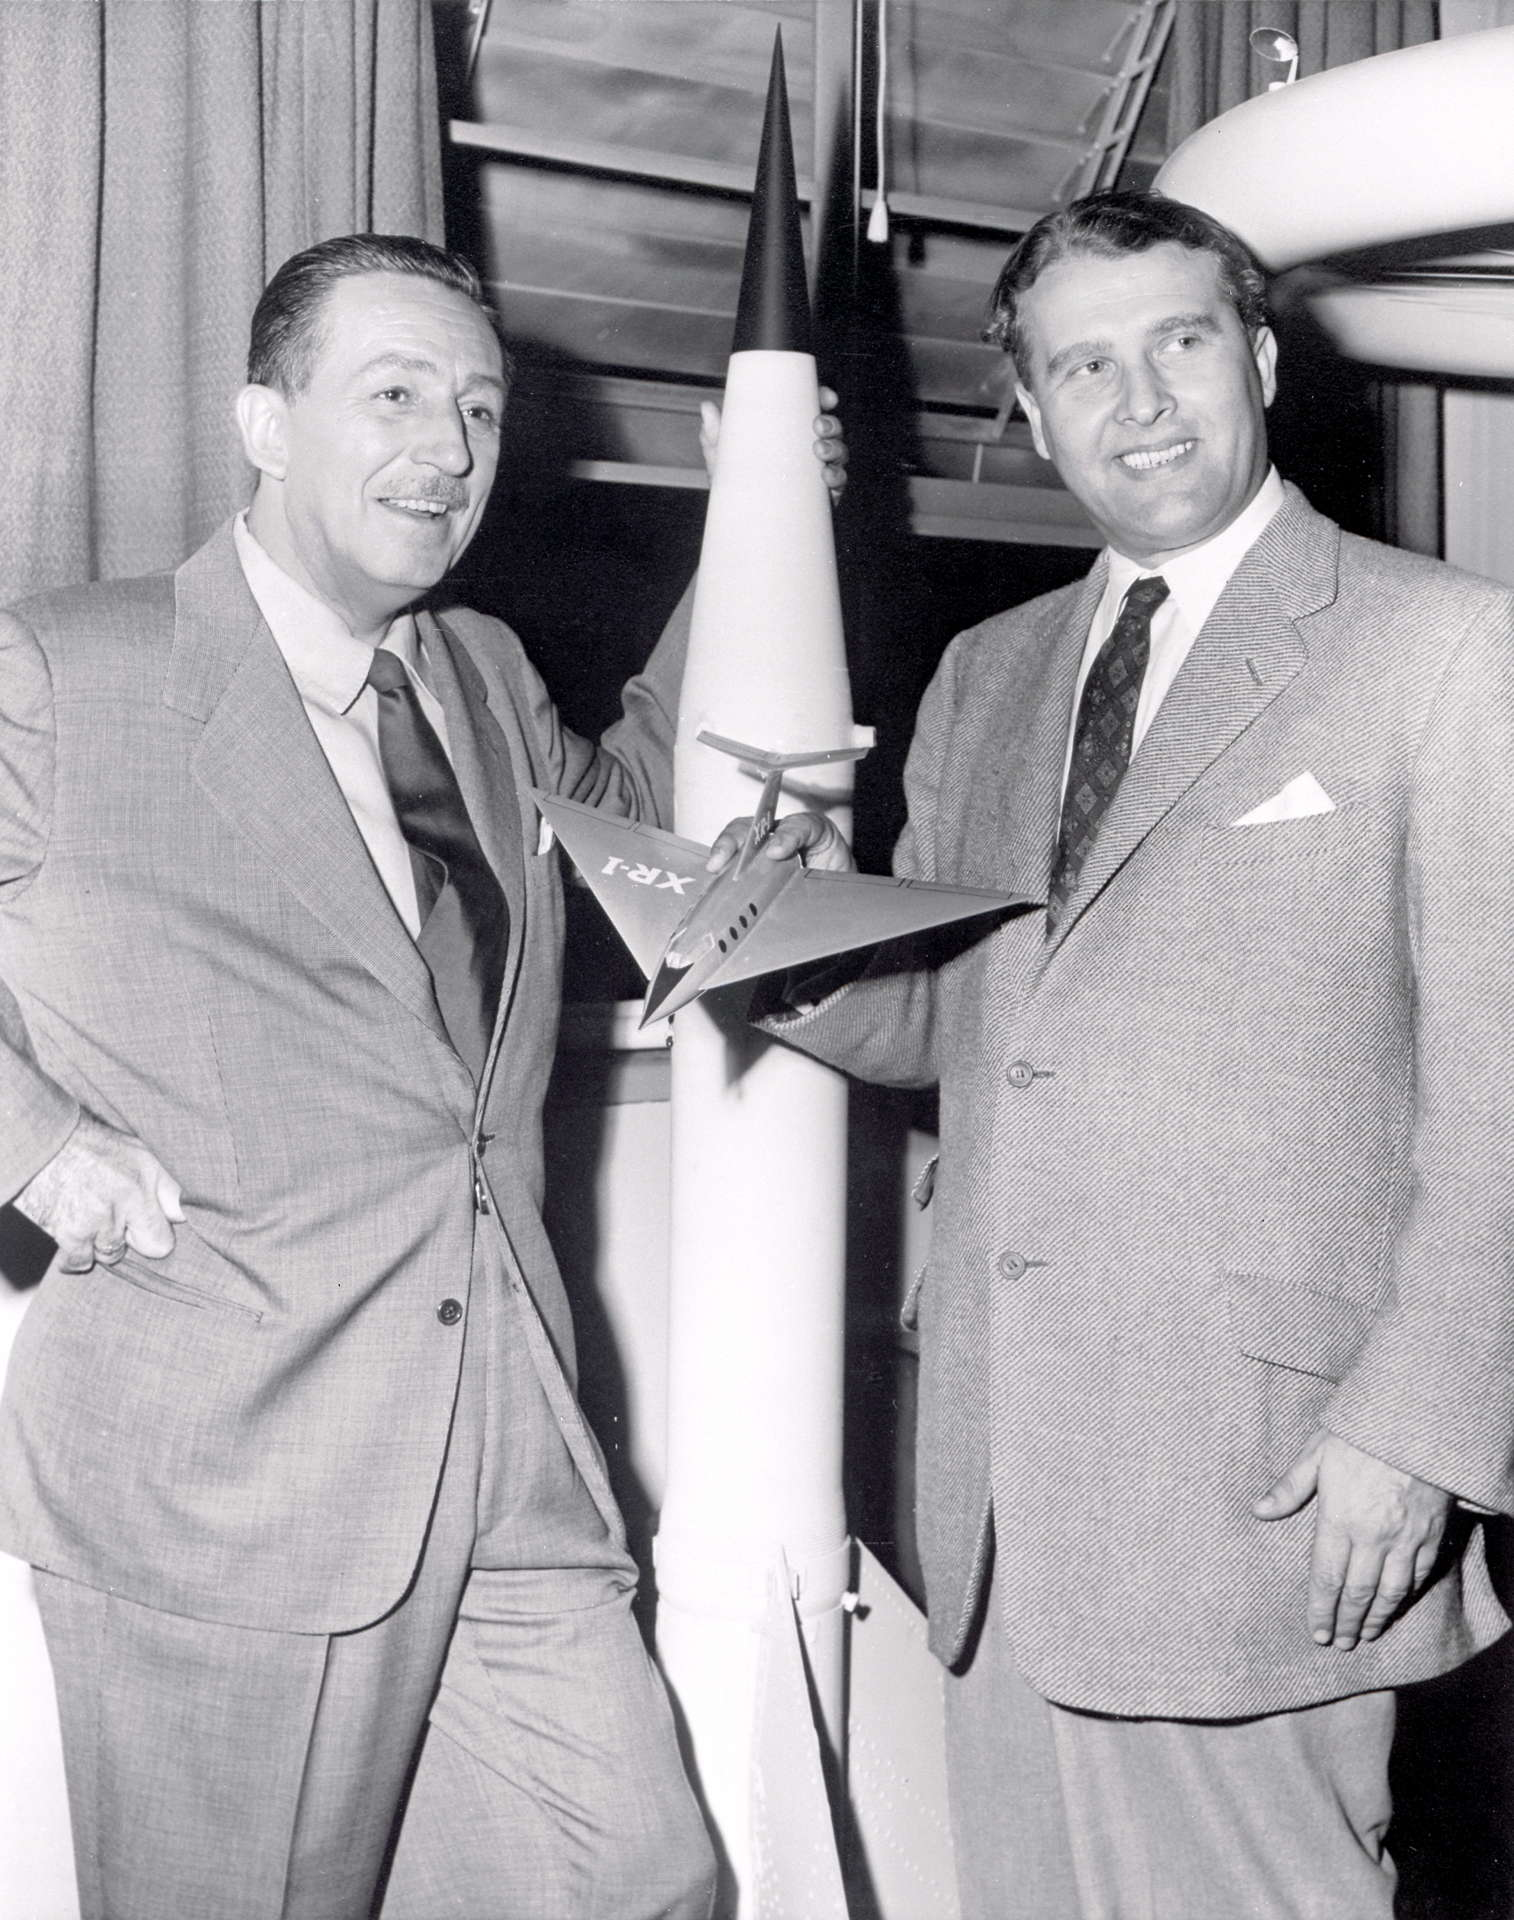 Tainted love von braun posing with walt disney left in front of a